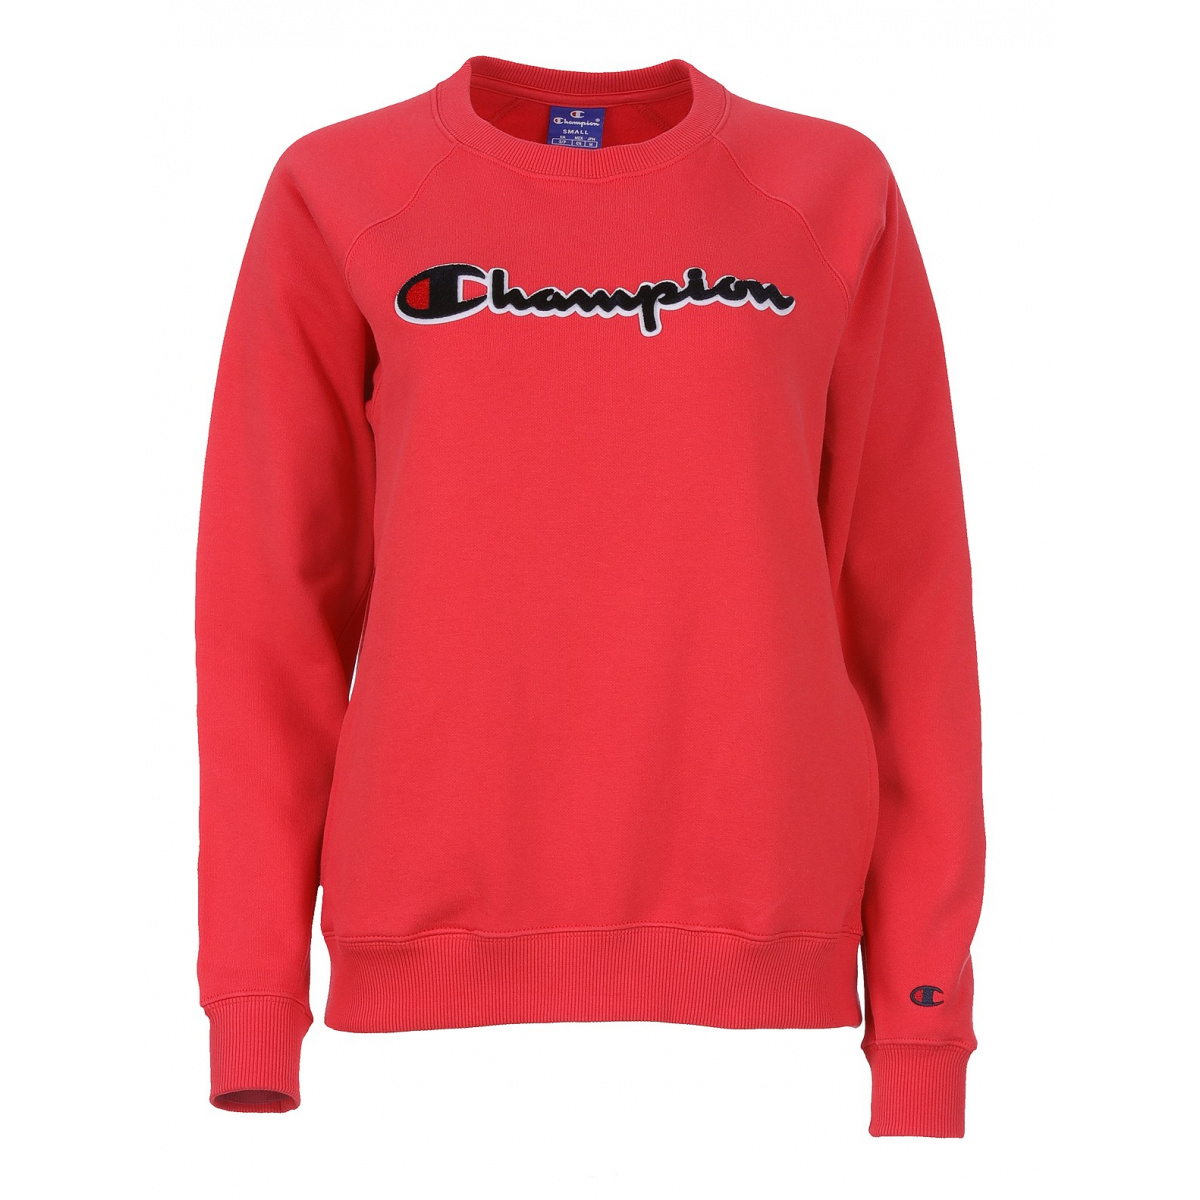 reasonably priced best choice new arrival CHAMPION Sweat femme rouge